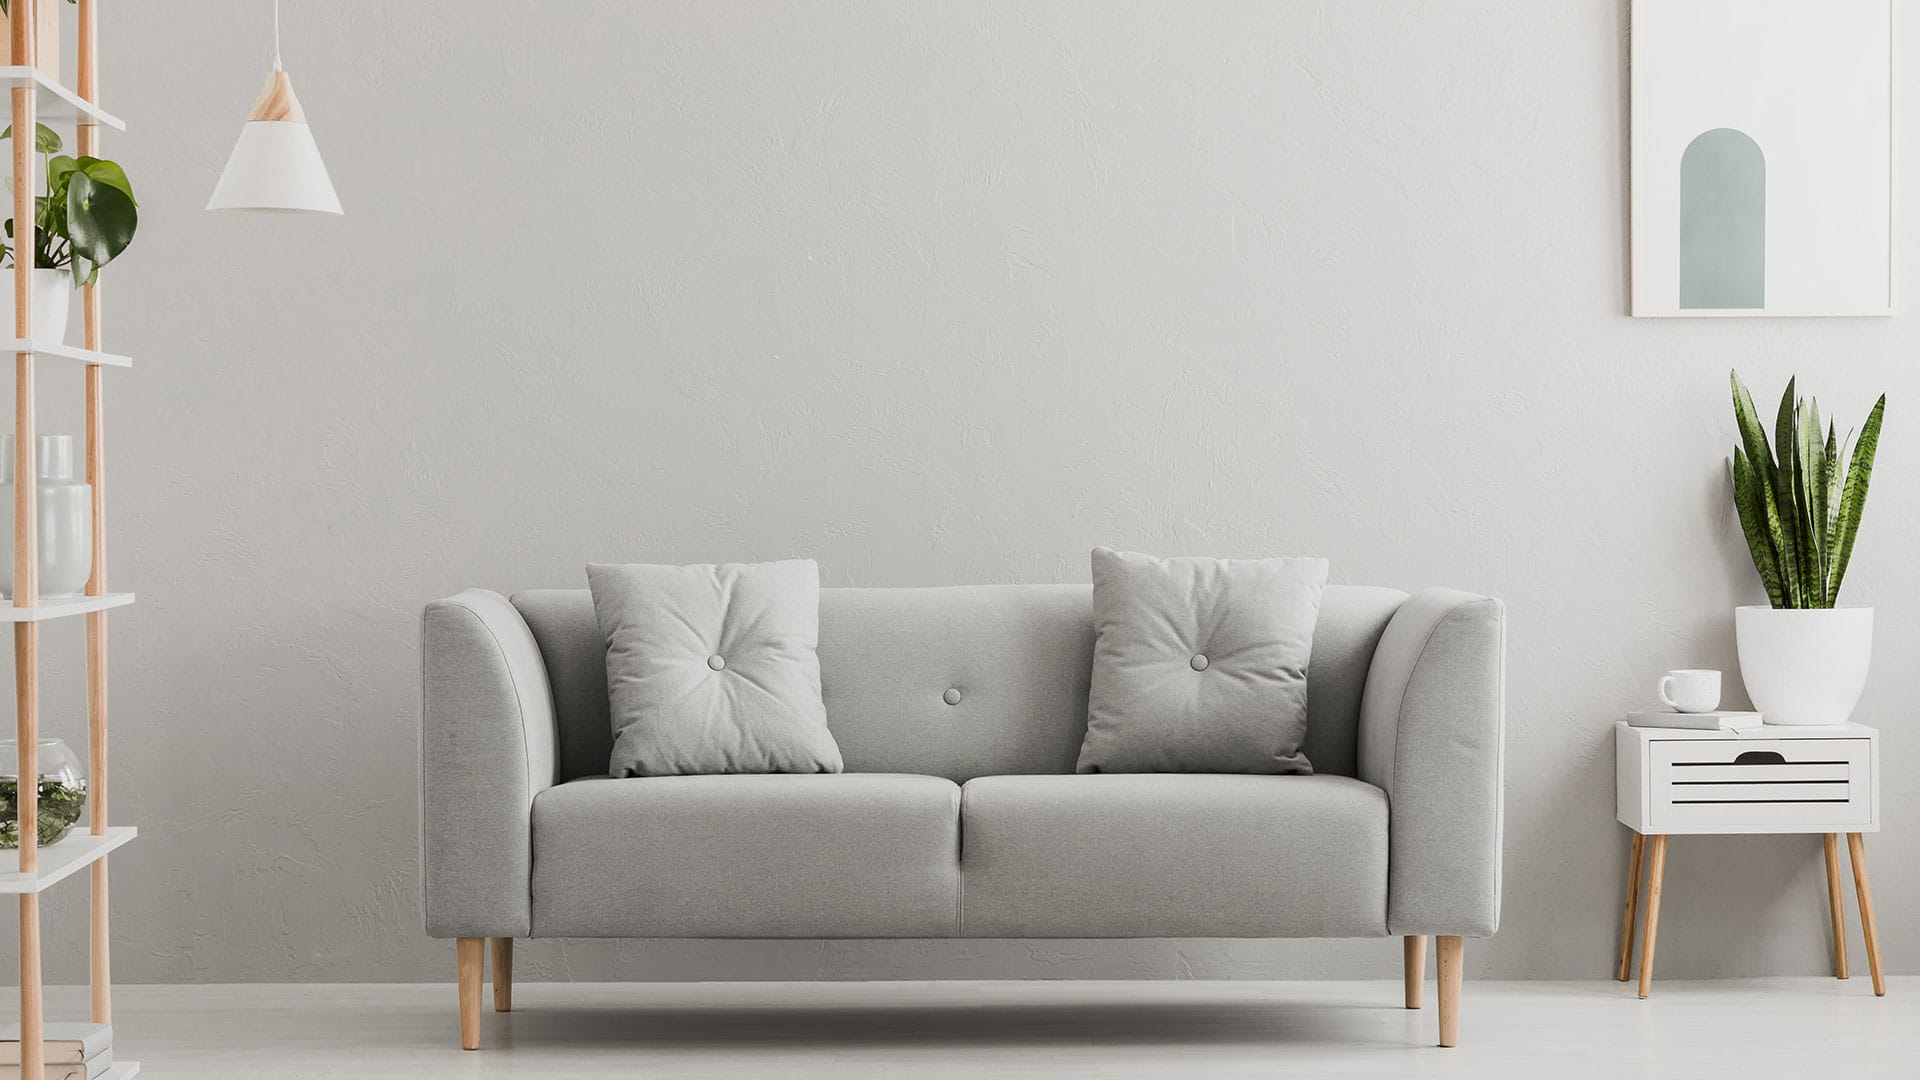 A grey couch looking clean after housekeeping